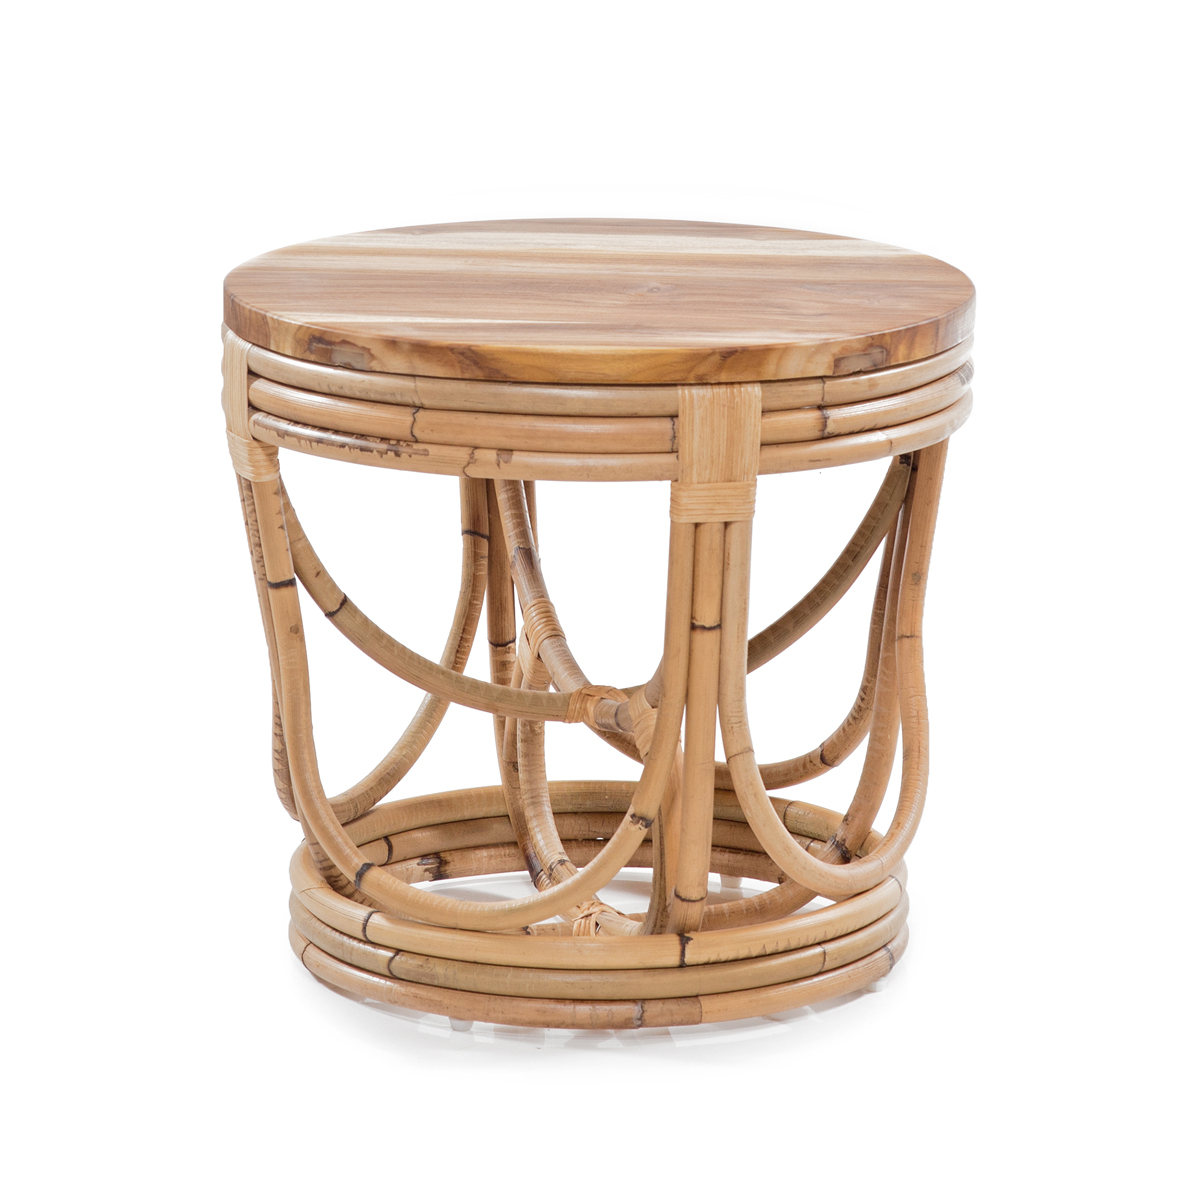 Teak satellite side table Rattan Commercial Furniture  : Satelite side table teak topWS from www.lincolnbrooks.com.au size 1200 x 1200 jpeg 487kB